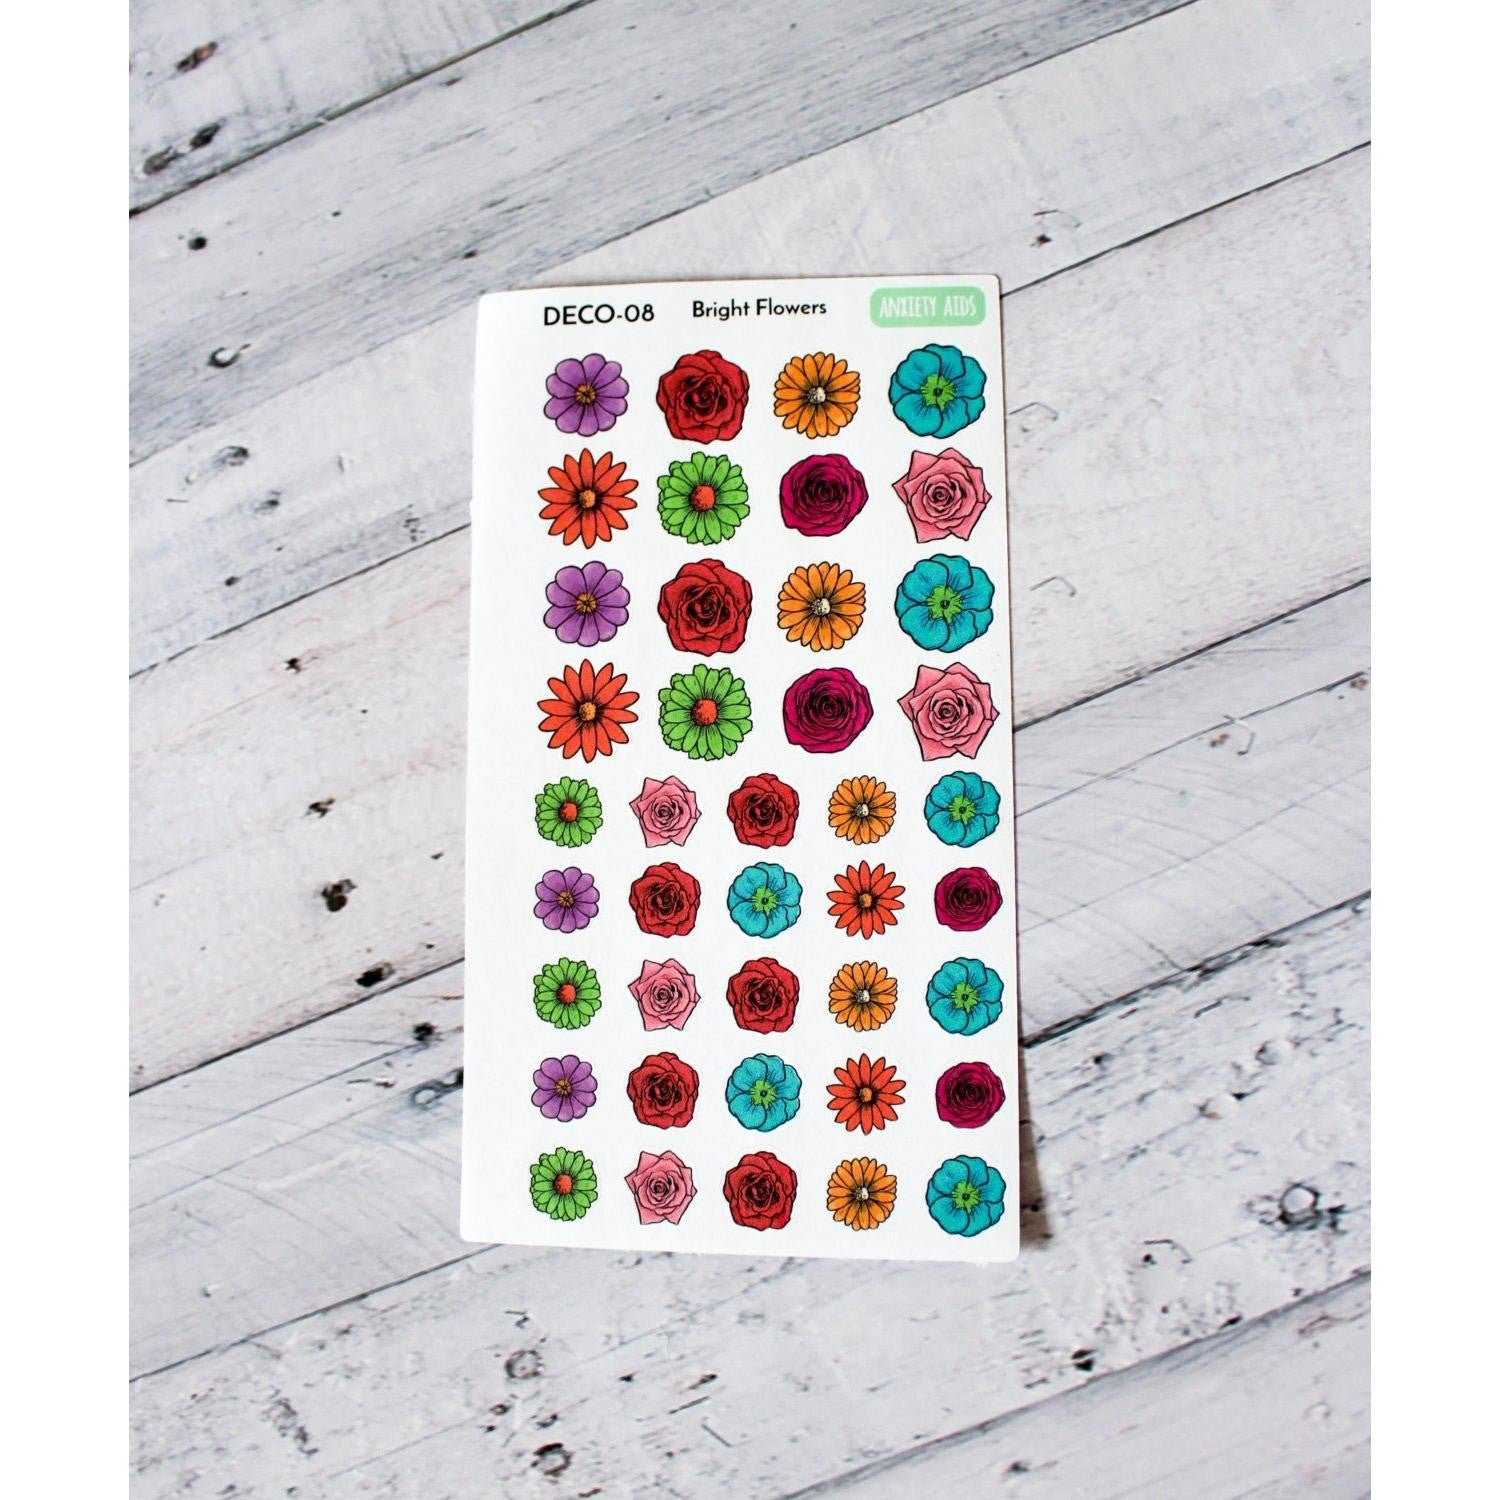 DECO-08 Bright flower Planner Stickers - Anxiety Aids